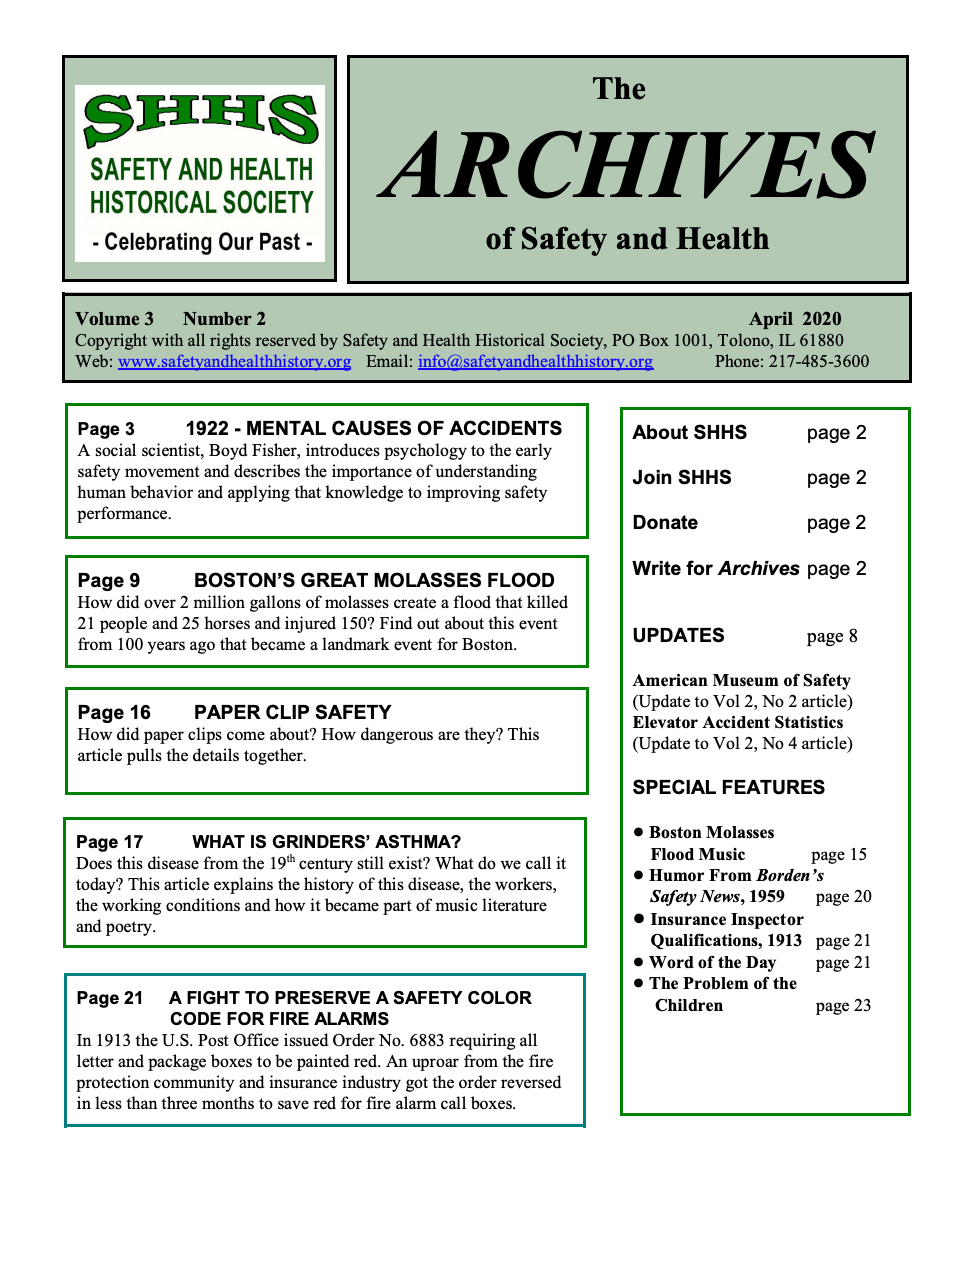 Volume 3 Number 2 - The Archives Of Safety And Health